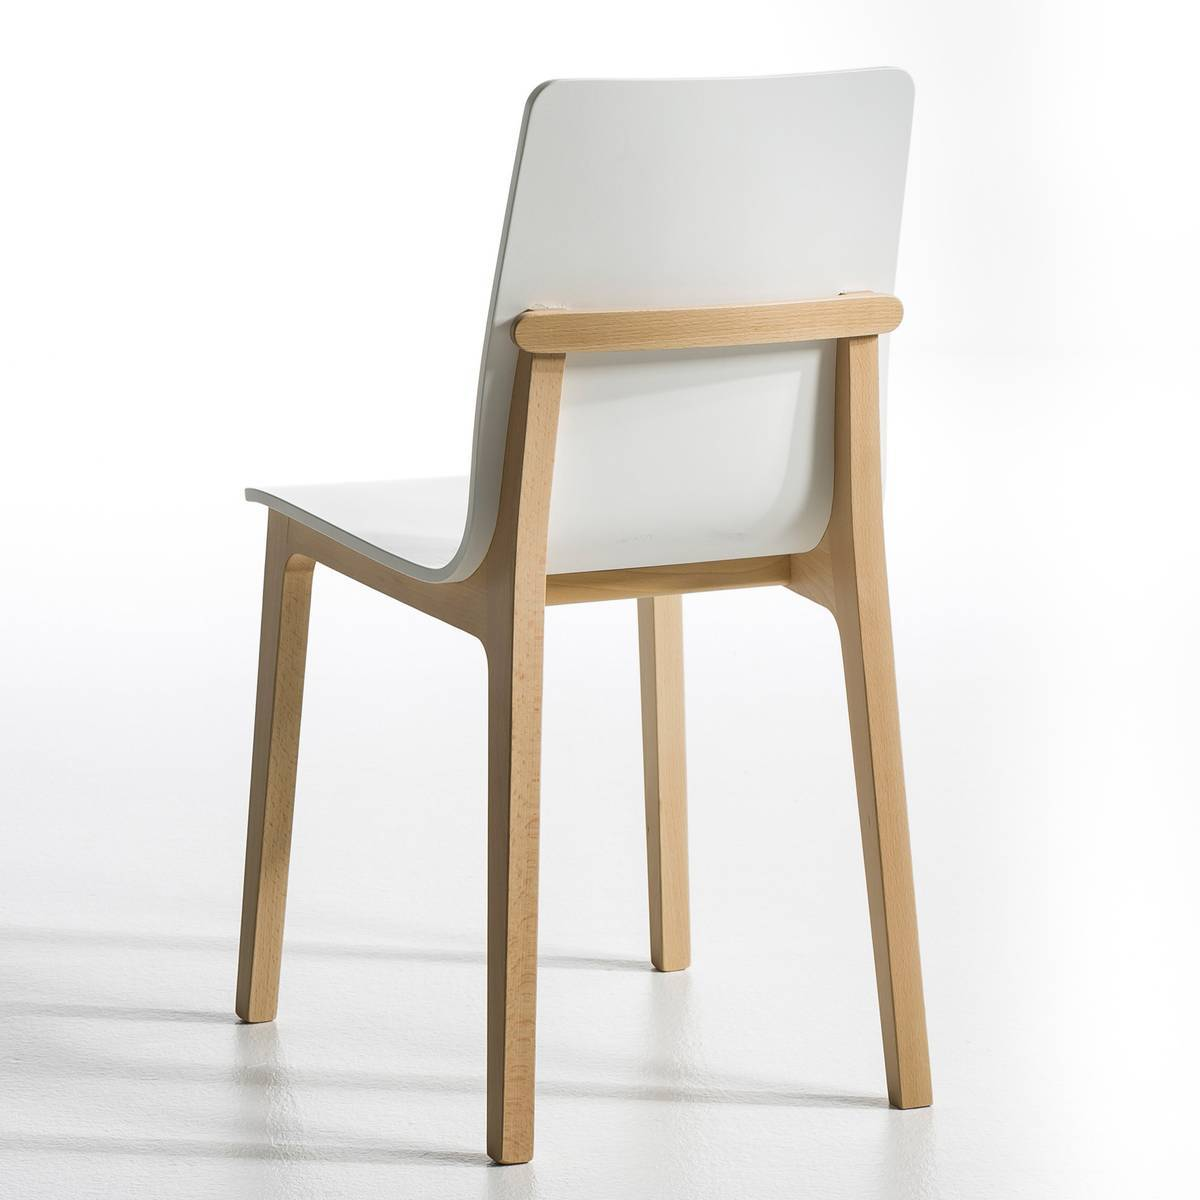 AM.PM. Silla Atitud design E. Gallina (lote de 2) blanco